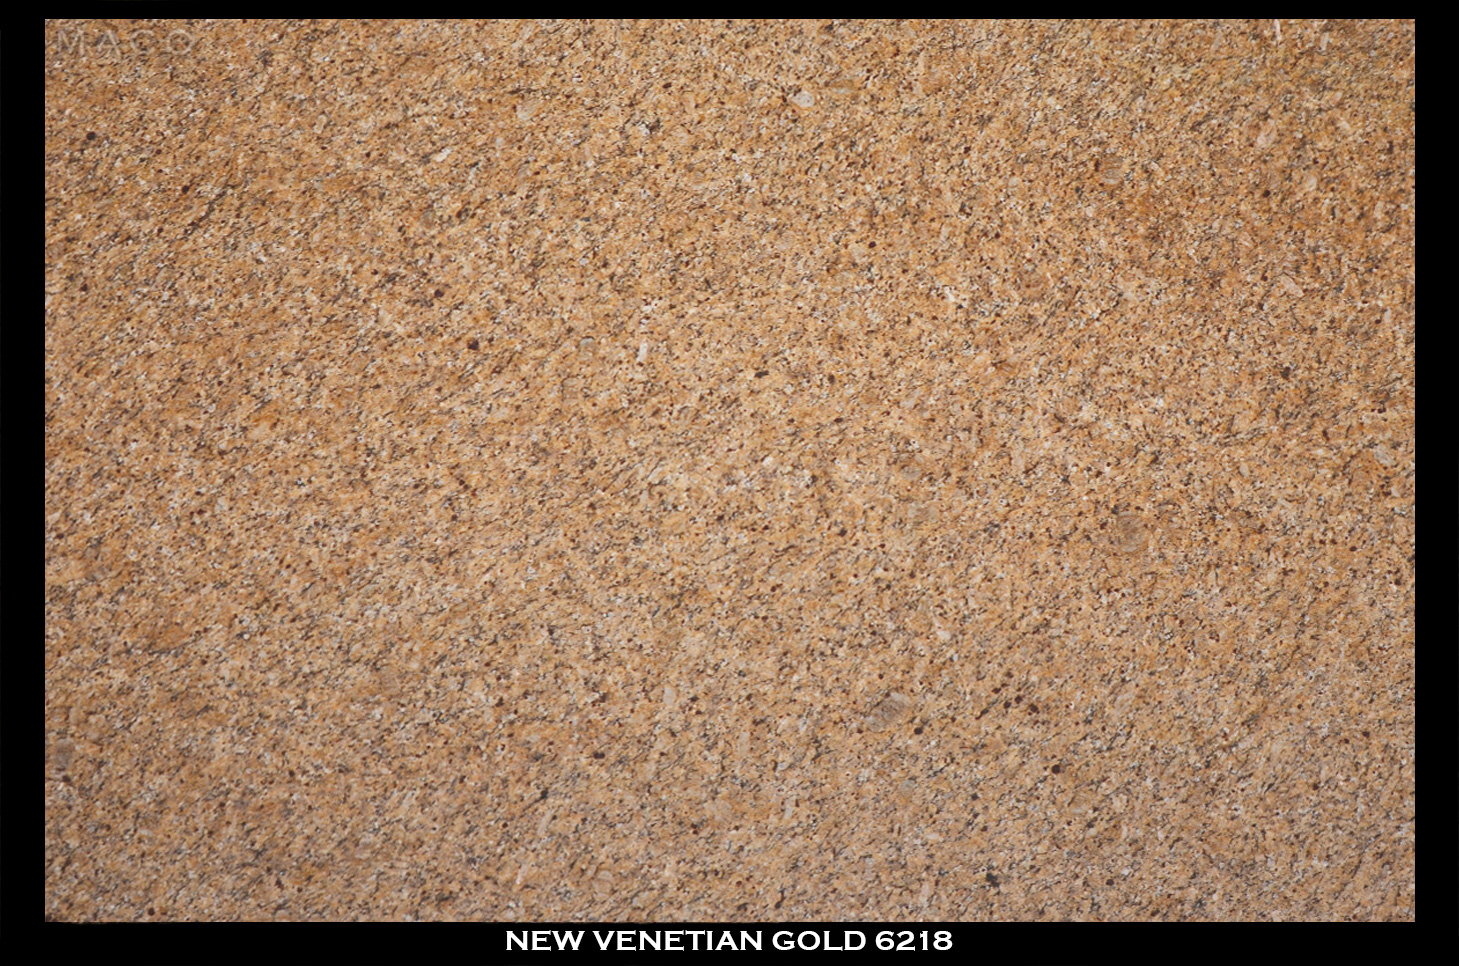 New-Venetian-Gold-6218-2-slab